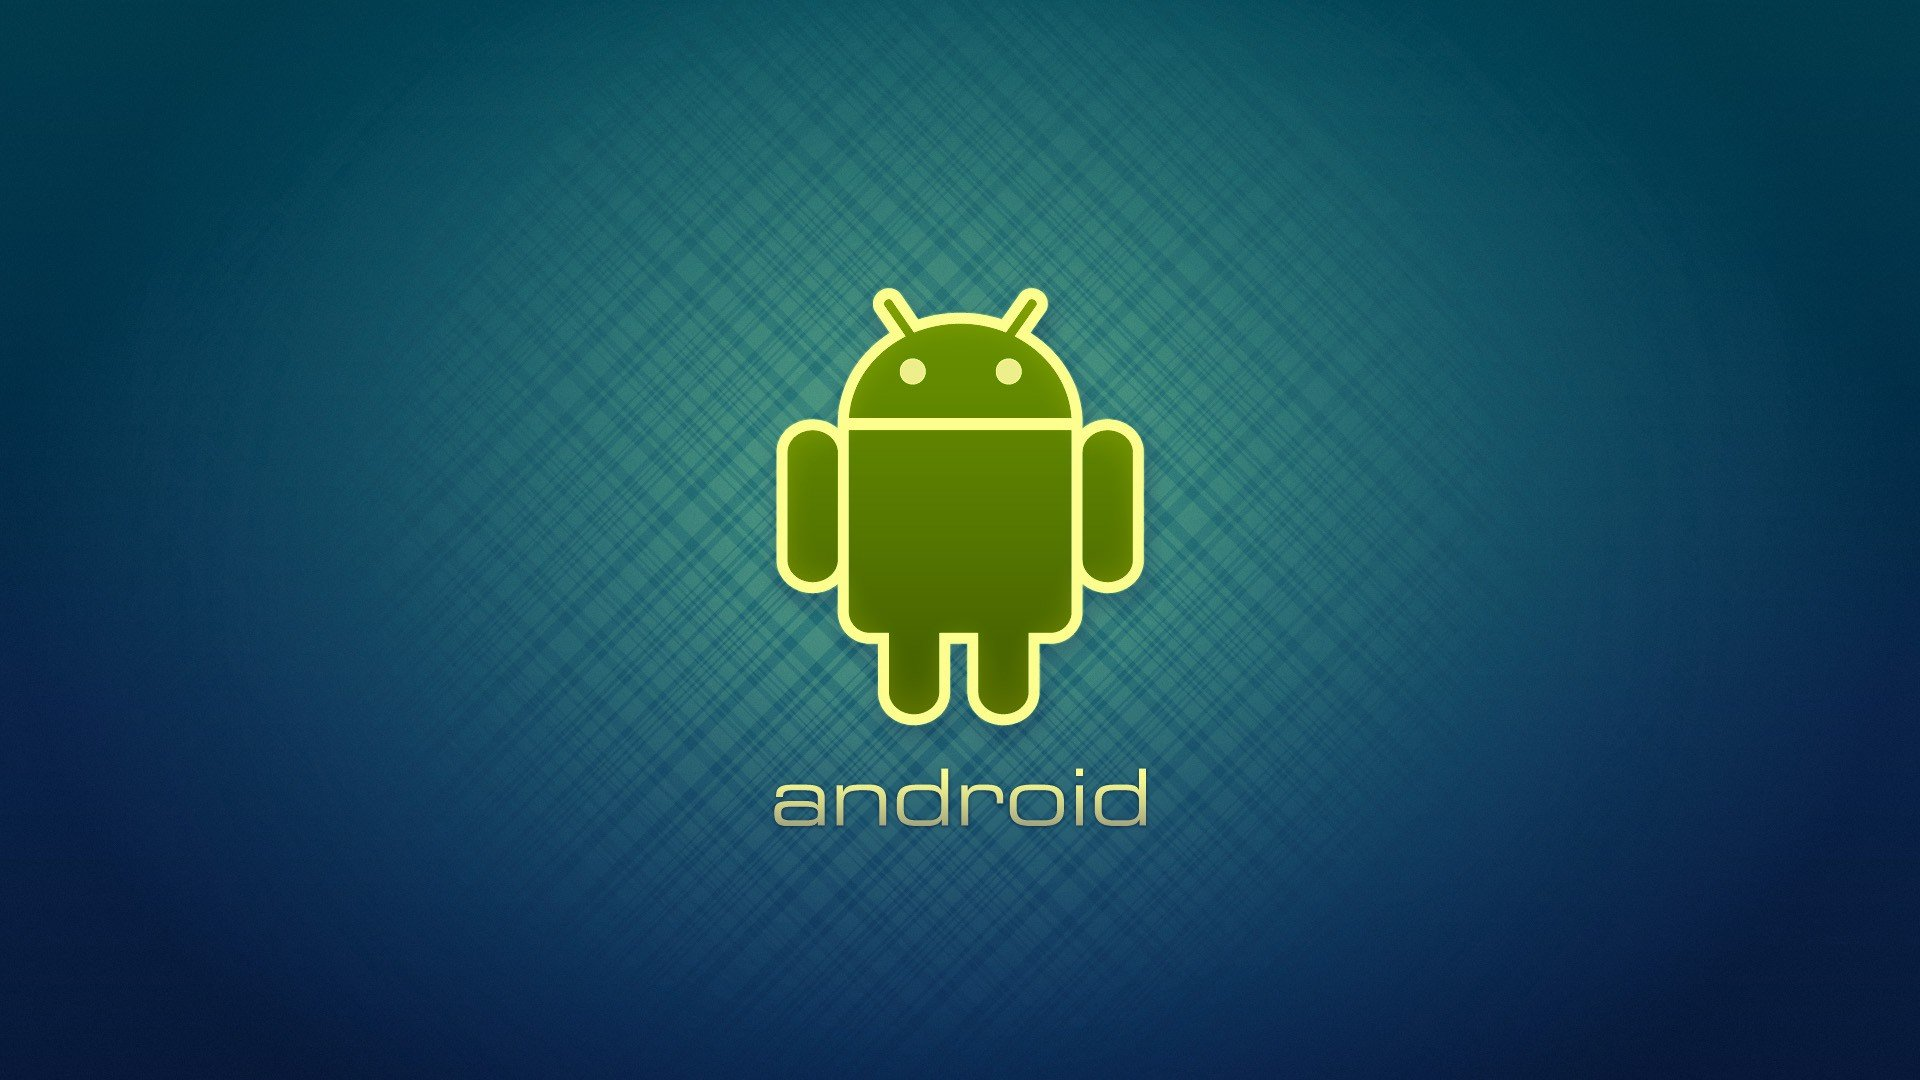 ... -download-android-live-wallpapers-background-hd-wallpaper.jpg